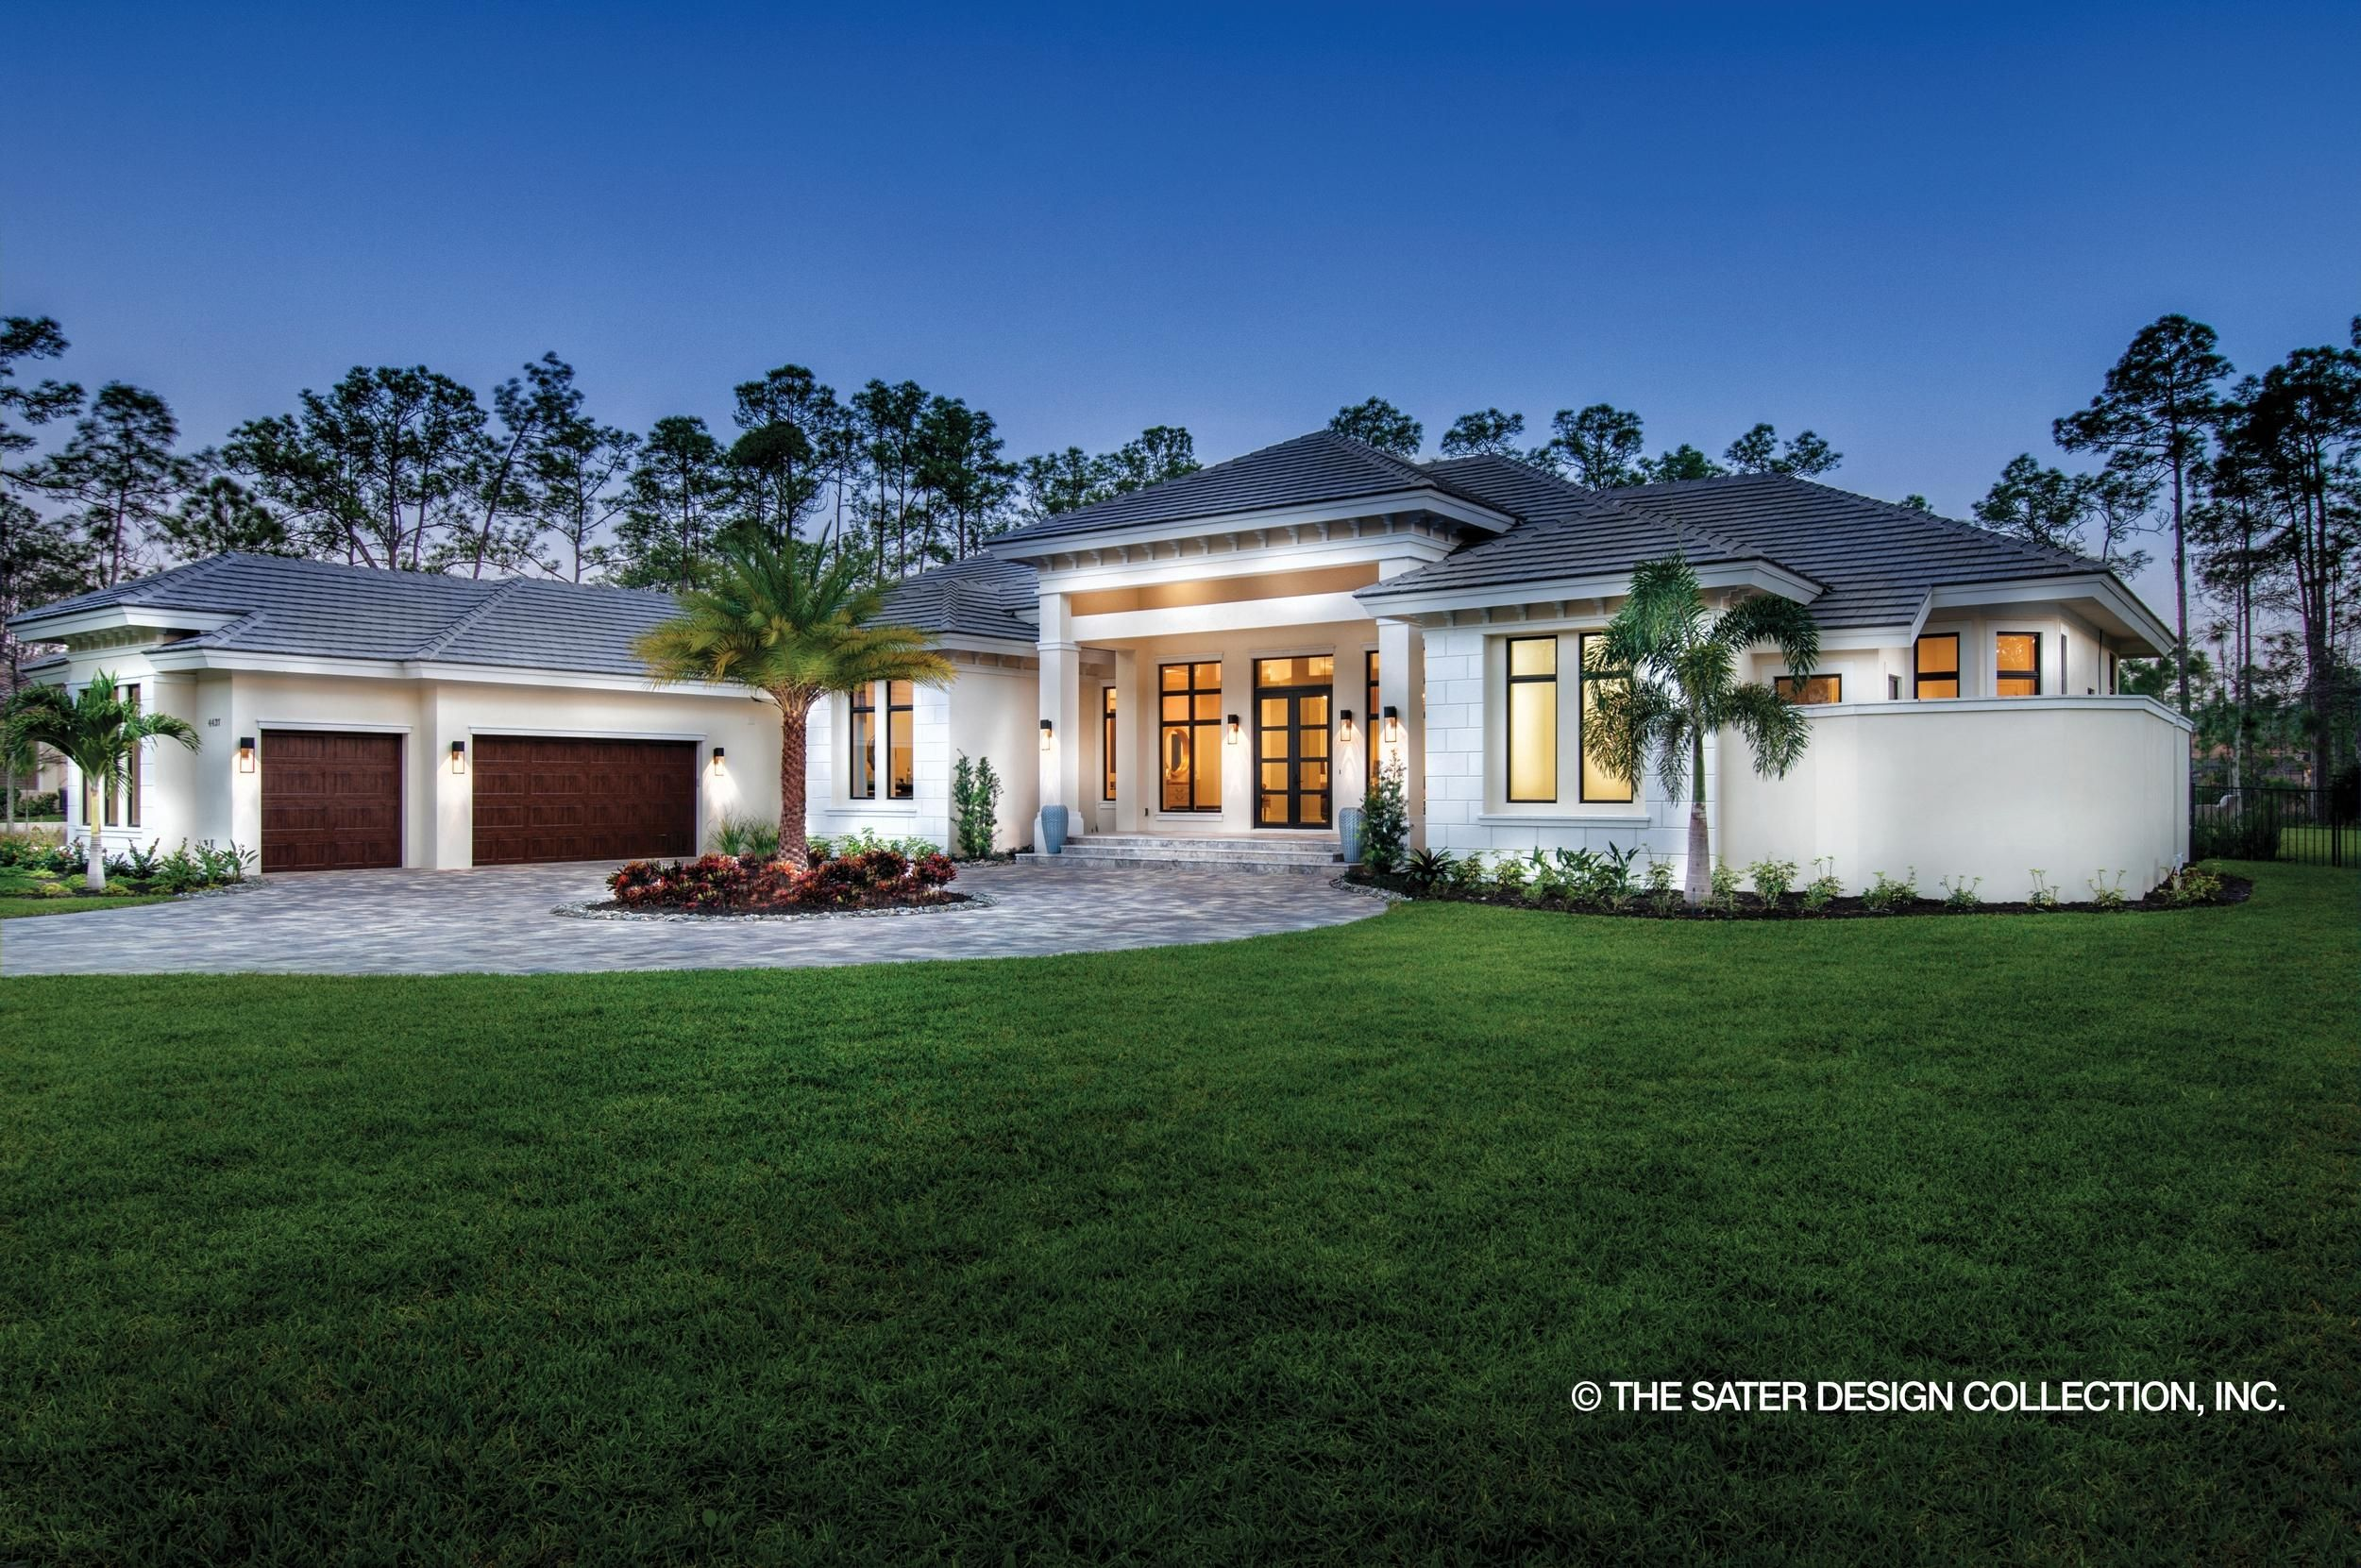 House Plan Luxury On One Level Mediterranean Style House Plans Home Building Design Mediterranean Homes